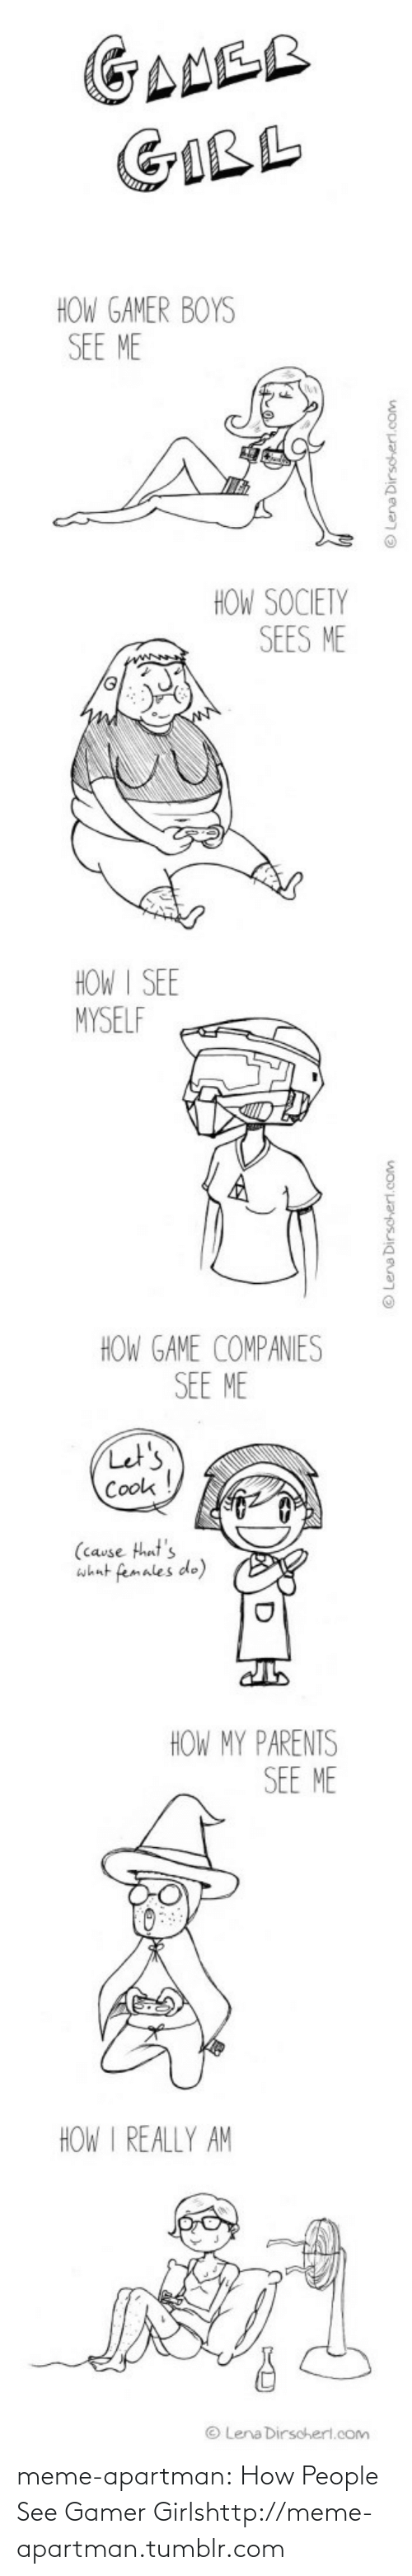 meme: GANER  GIRL  HOW GAMER BOYS  SEE ME  HOW SOCIETY  SEES ME  HOW I SEE  MYSELF  HOW GAME COMPANIES  SEE ME  Let's  Cook  (cause that's  what females do)  HOW MY PARENTS  SEE ME  HOW I REALLY AM  © Lena Dirscherl.com  woO'payosig euao  O Lena Dirschert.com meme-apartman:  How People See Gamer Girlshttp://meme-apartman.tumblr.com